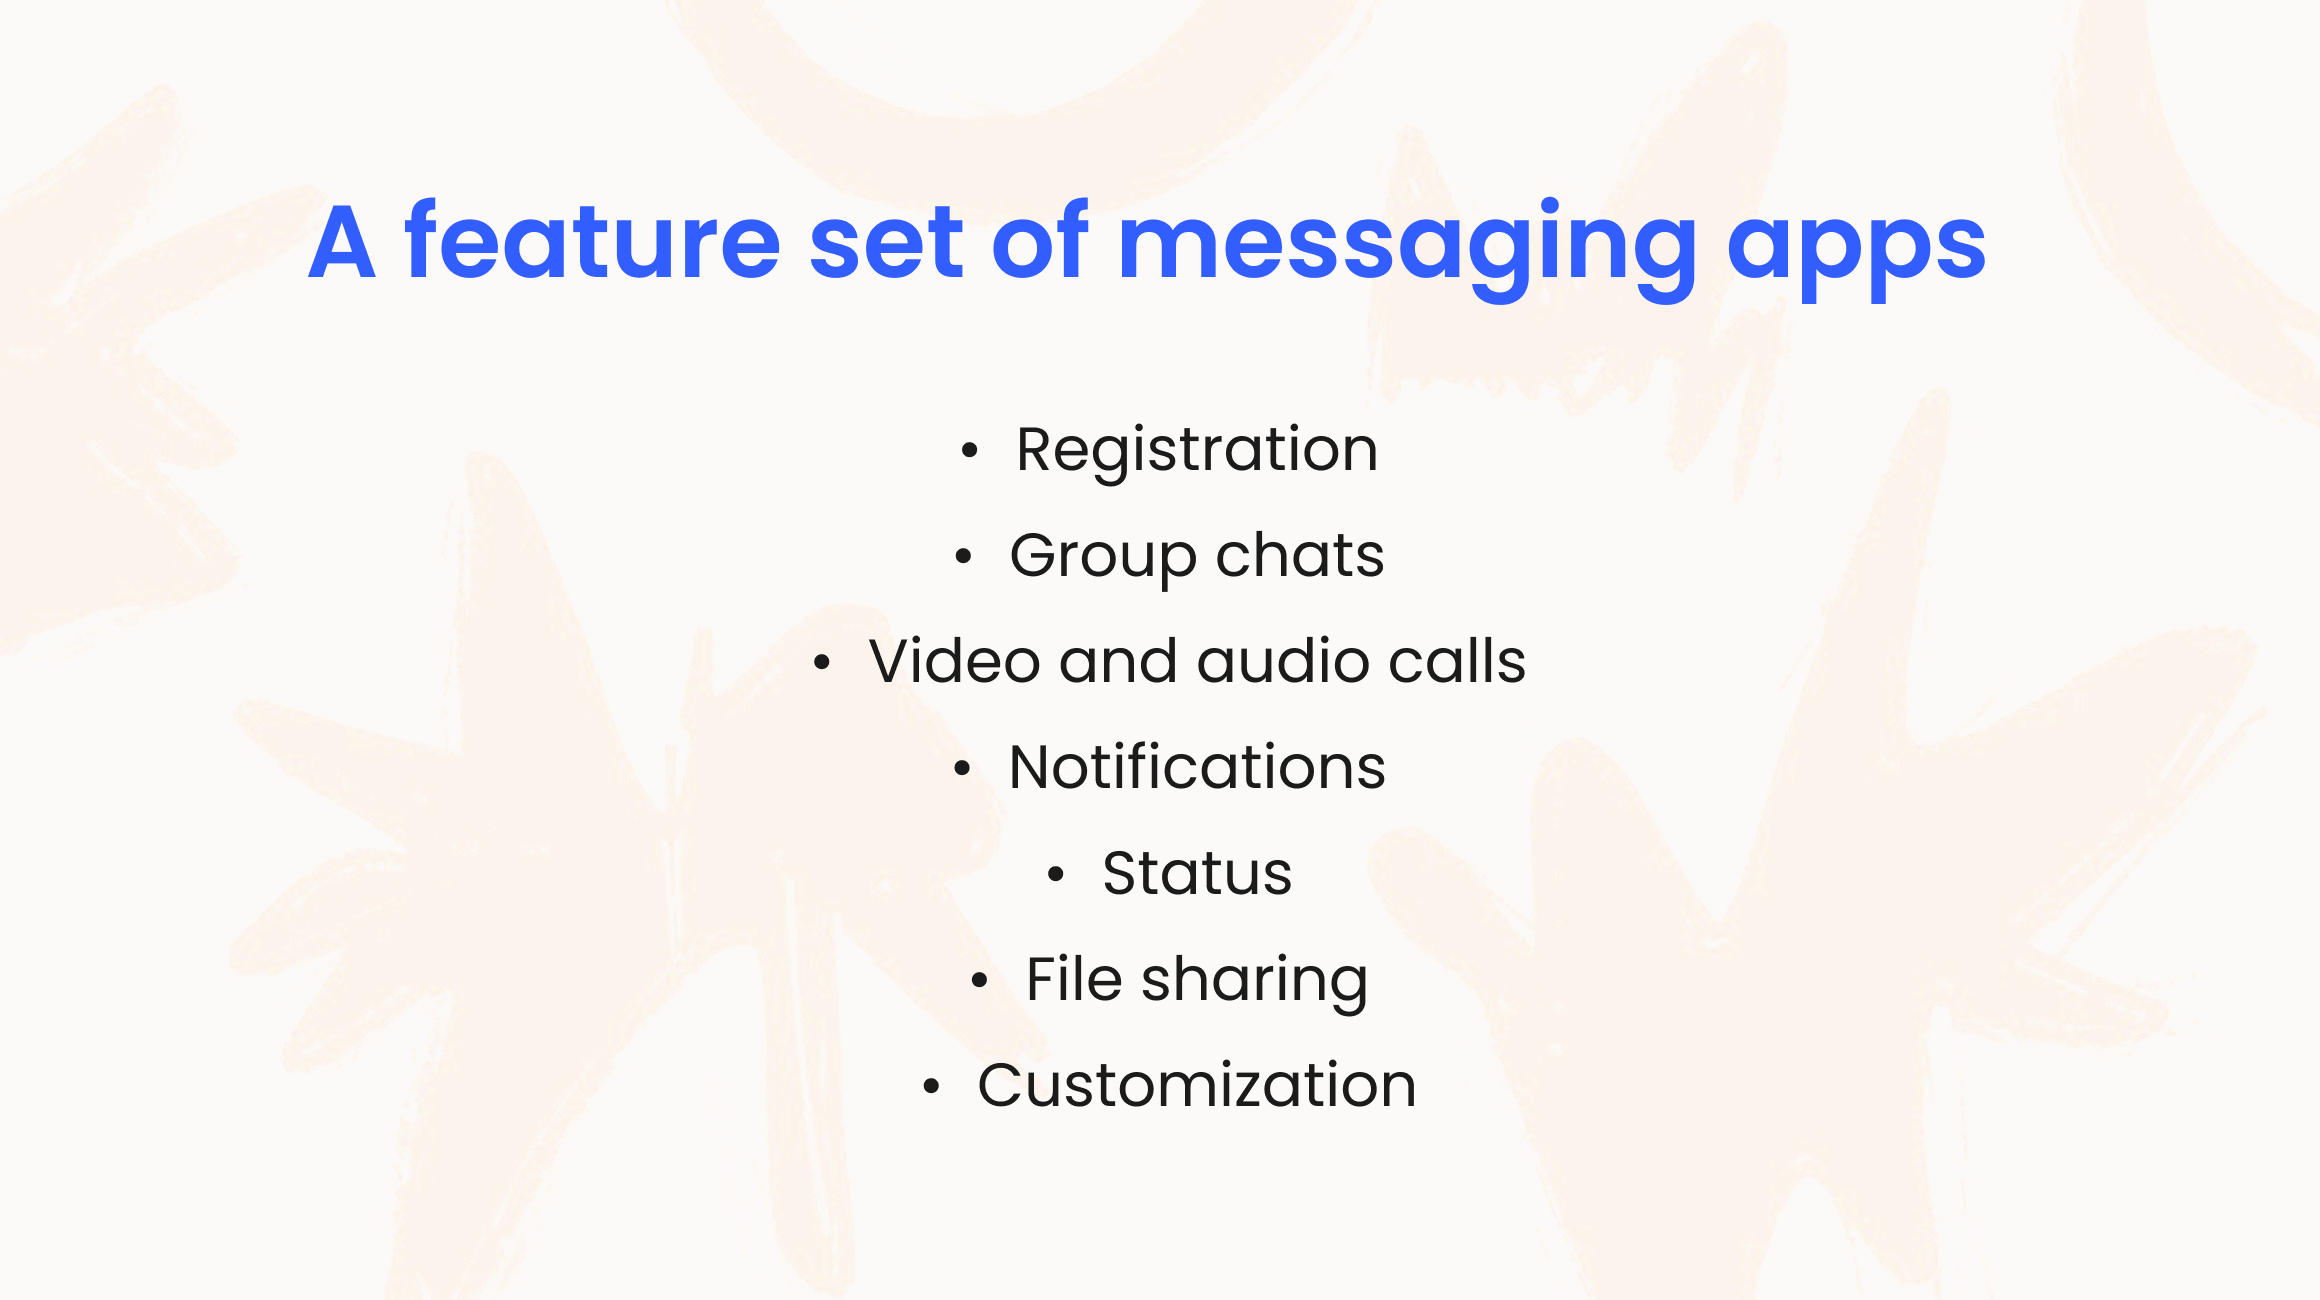 https://images.ctfassets.net/0nm5vlv2ad7a/6oqbVFEVT2Rzu0yQTtFyQO/346b5ff919eb8ca04f7f793cc16c71e5/feature_set_of_a_messaging_app.png